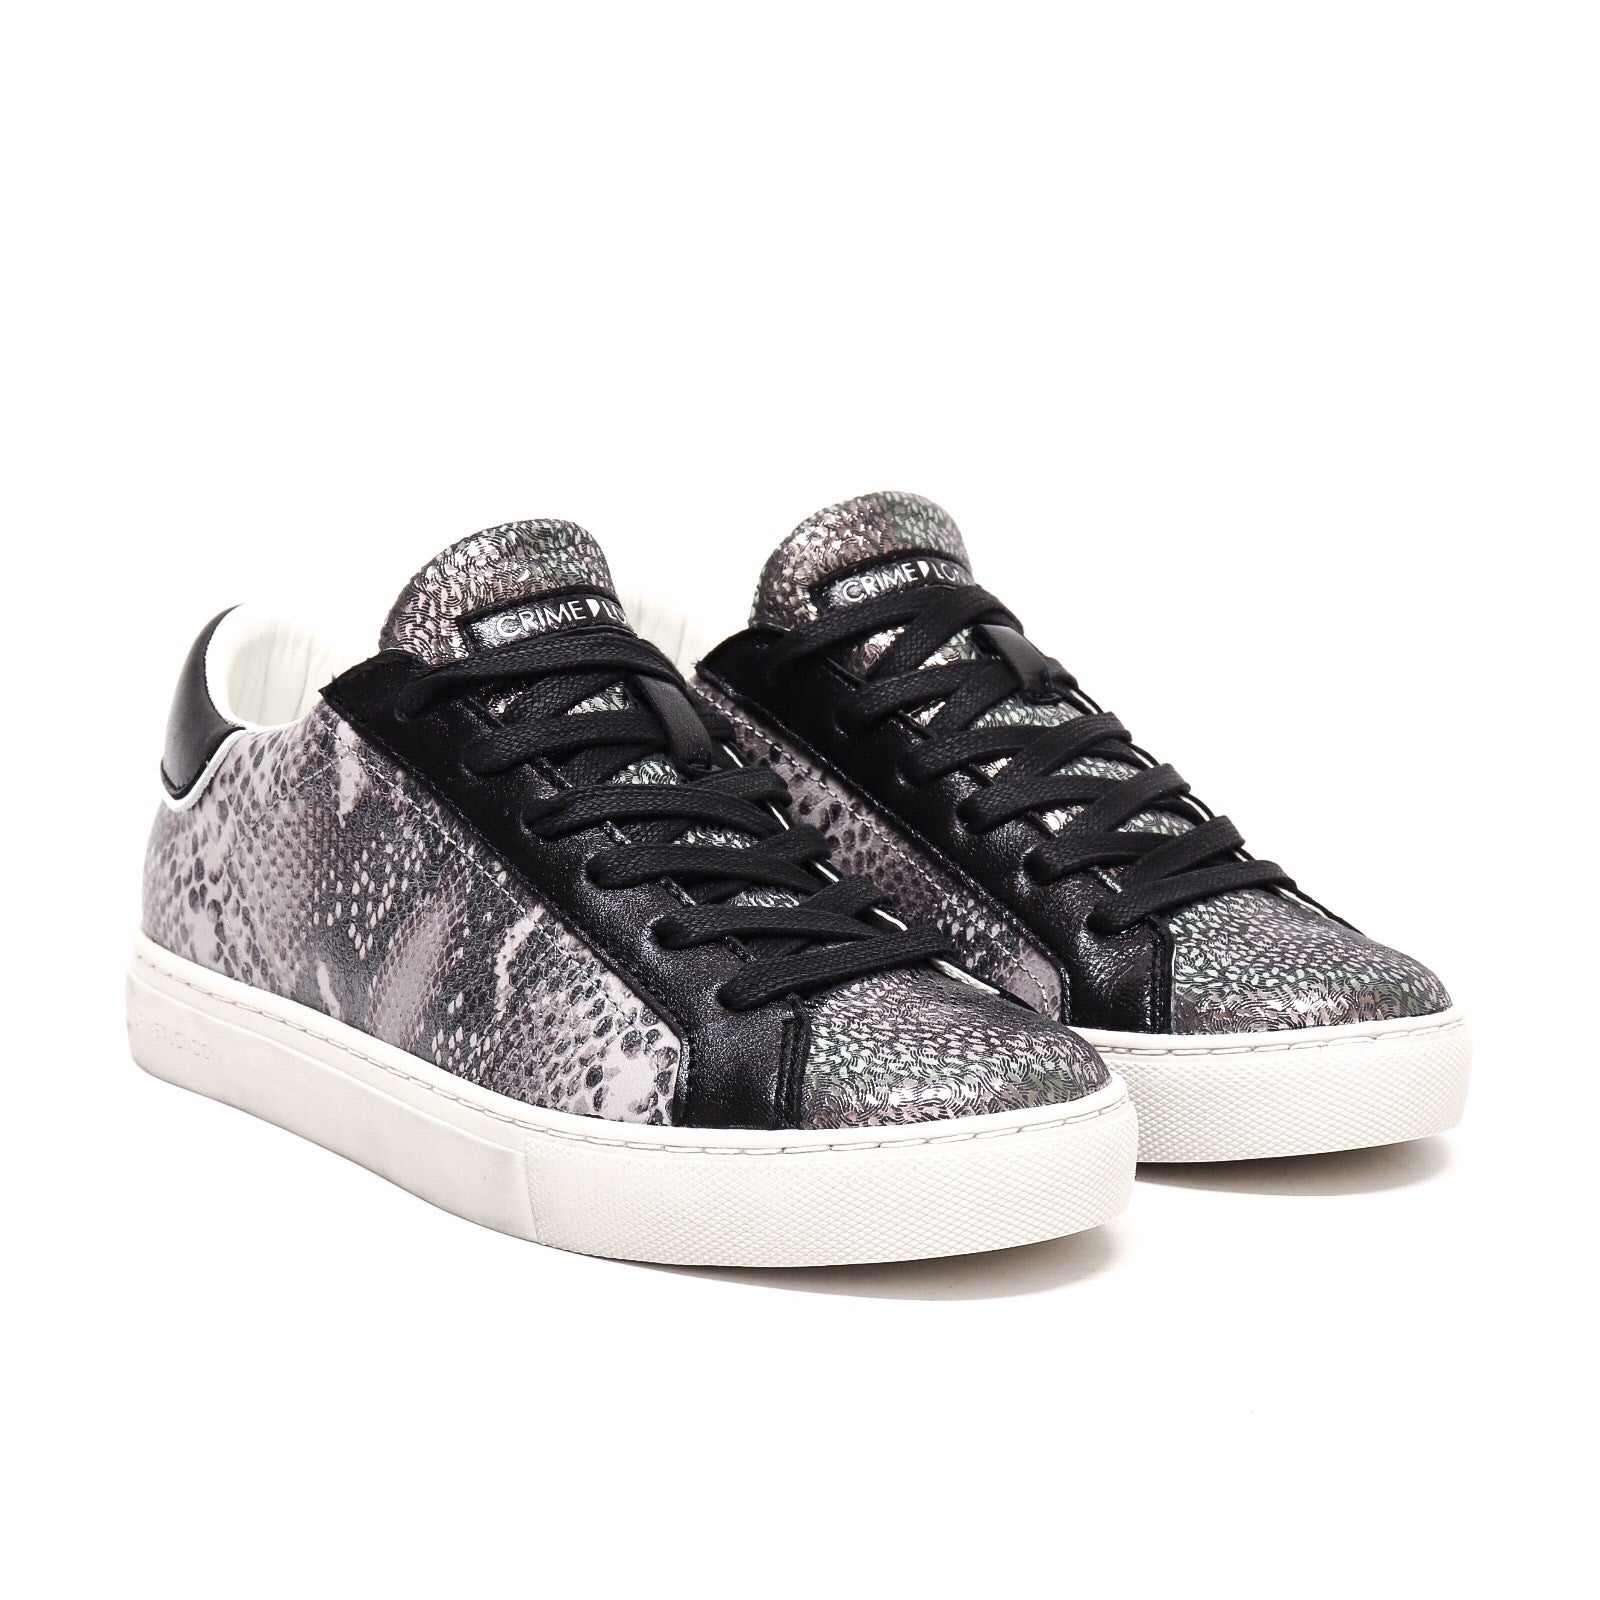 Crime London Sneaker Low Top Essential